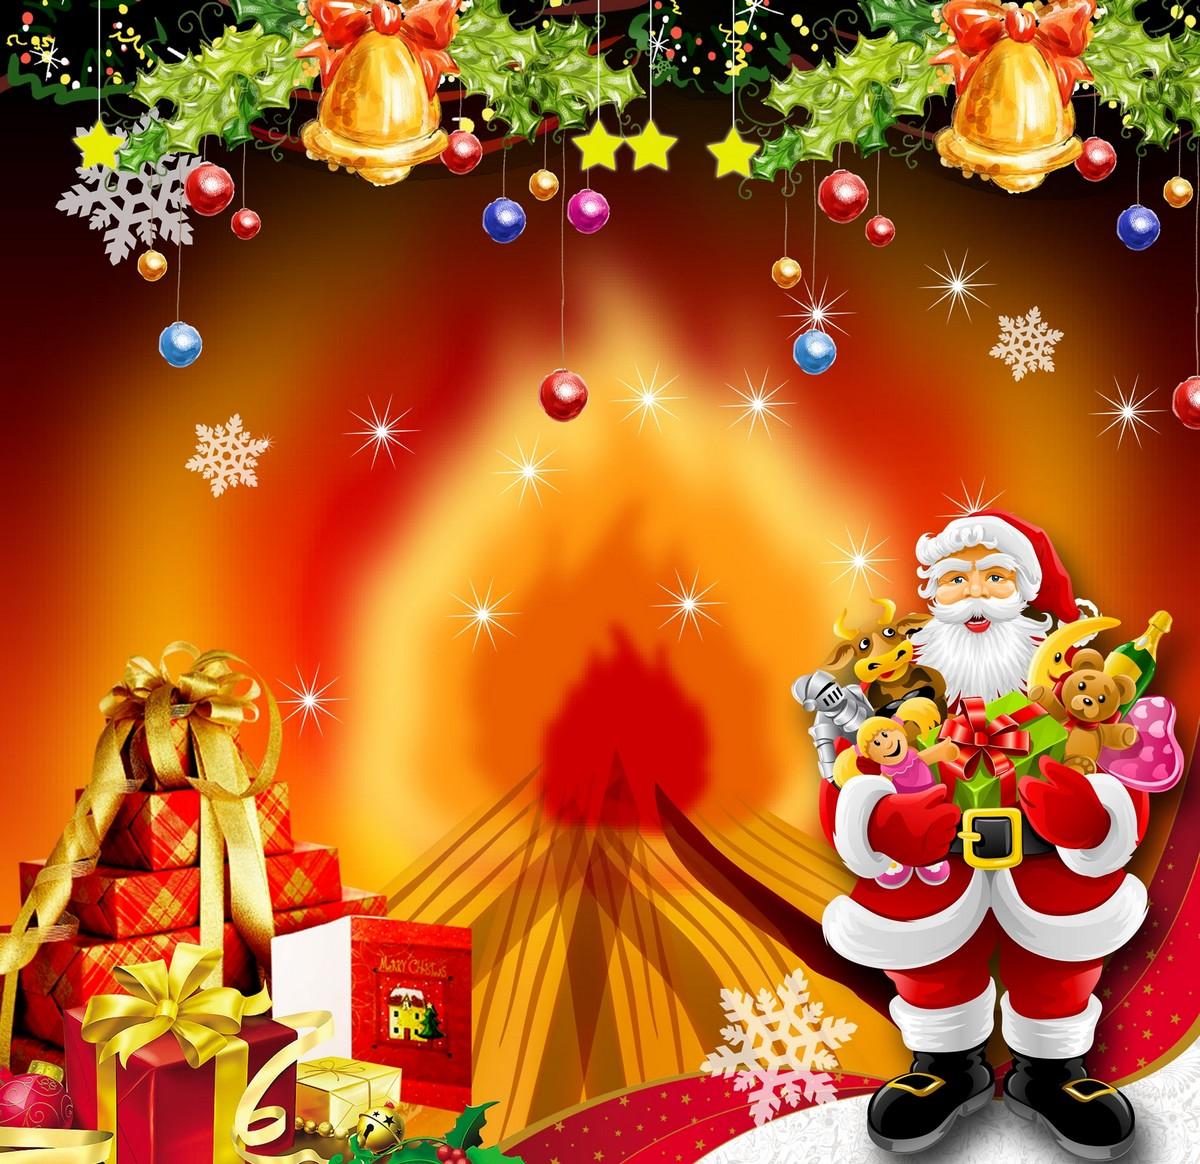 Merry Christmas Wishes HD Wallpaper · Merry ...